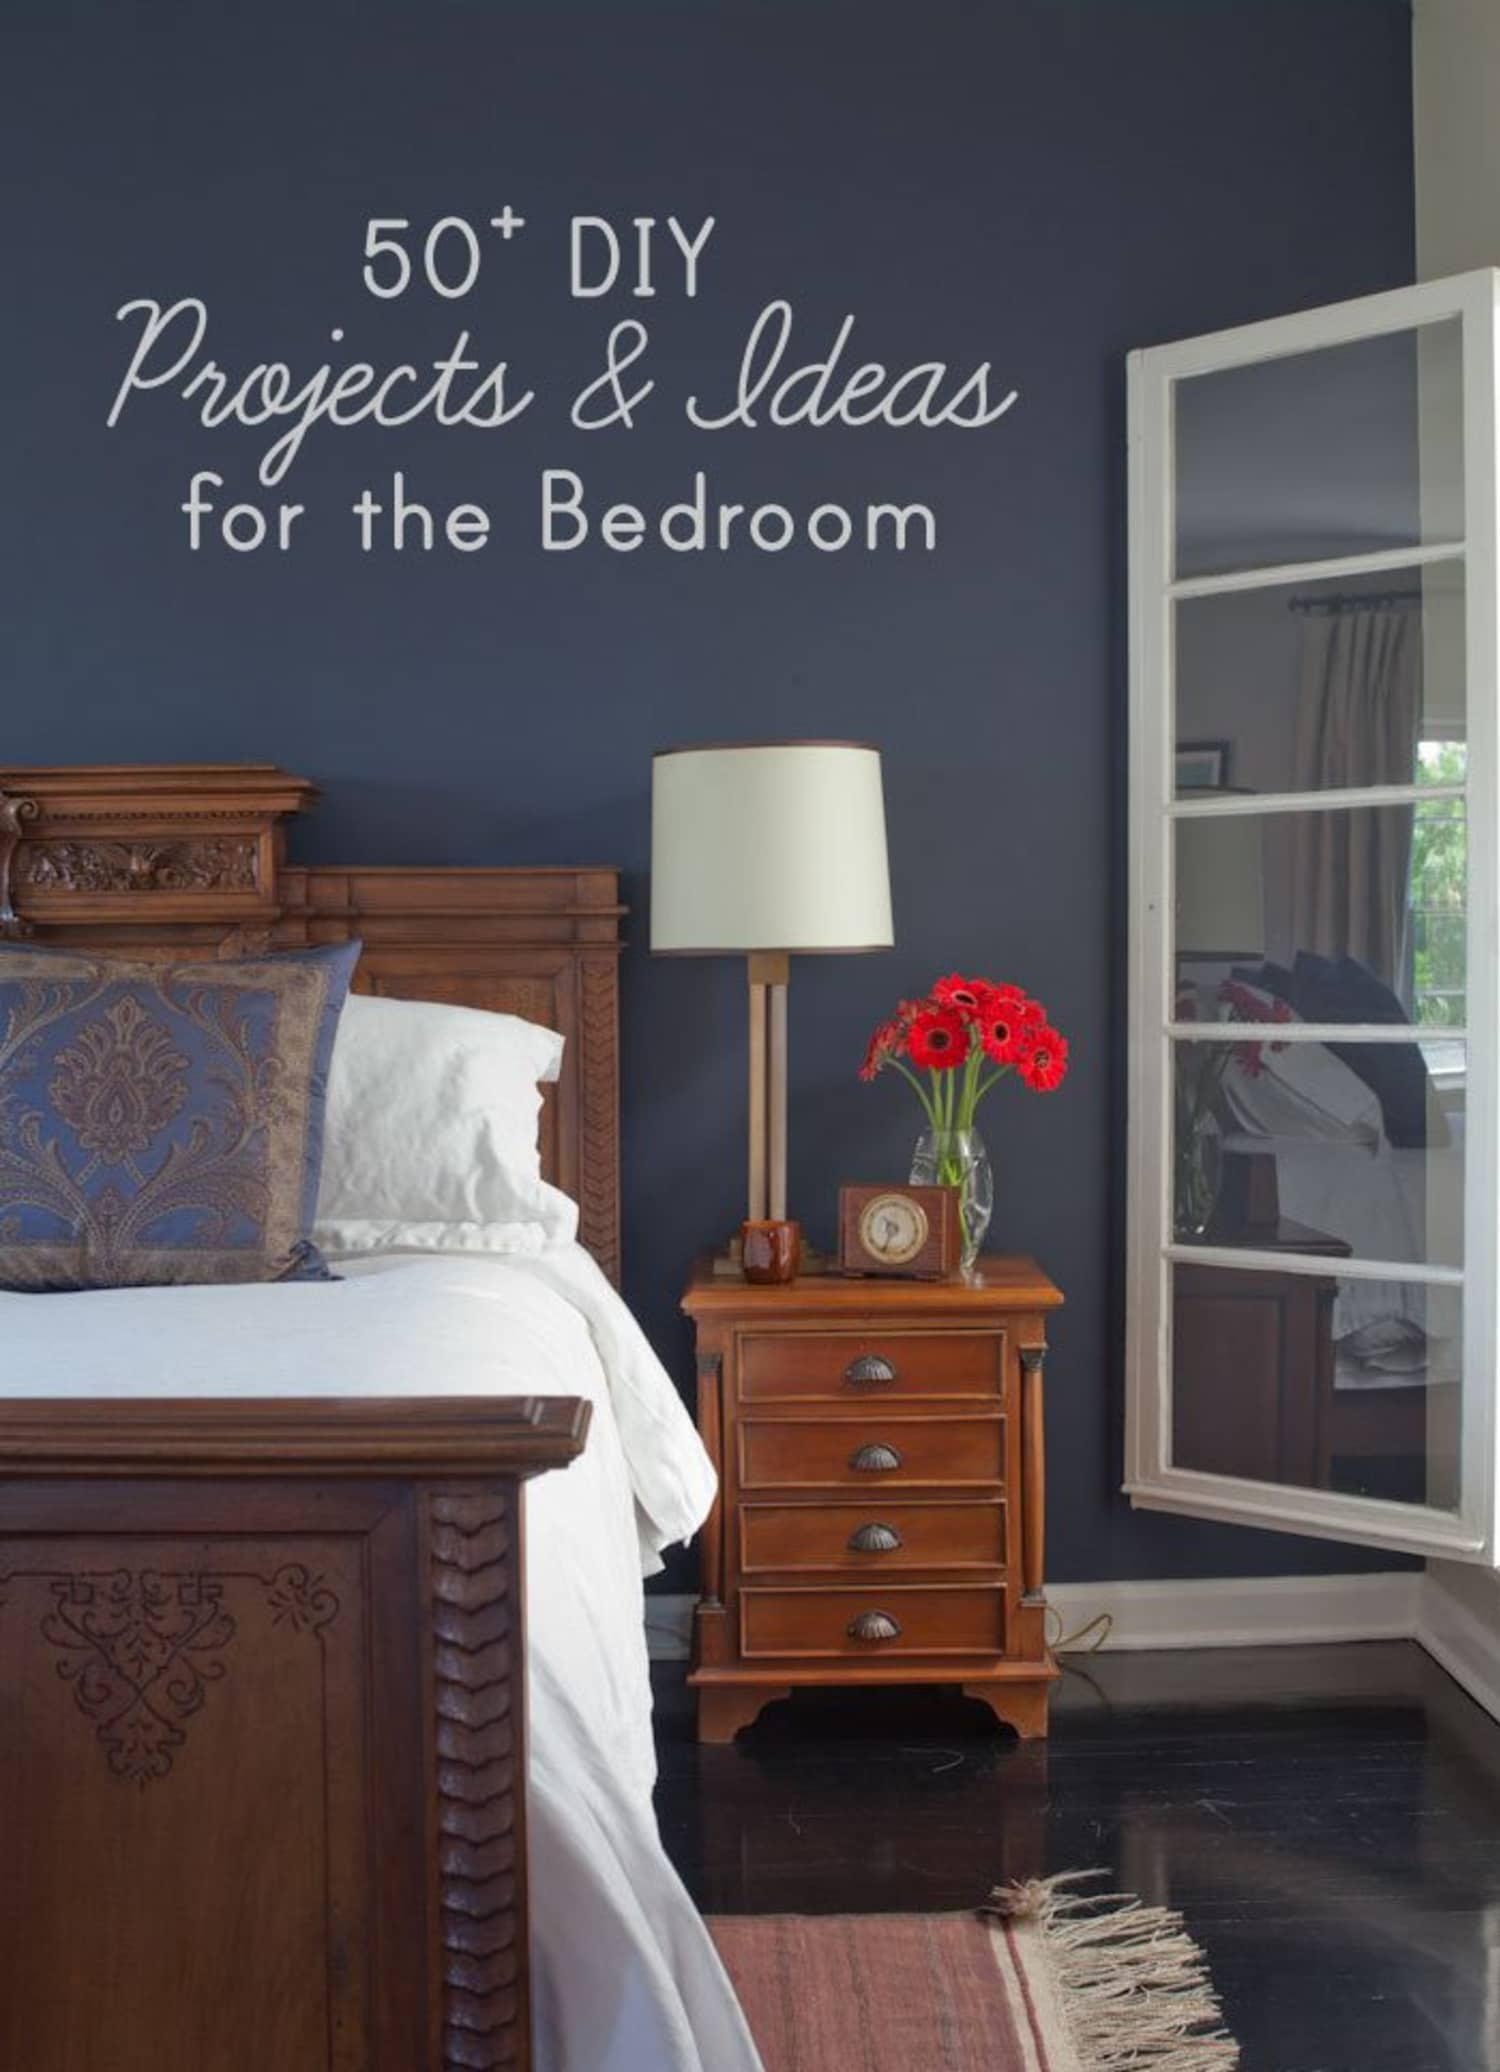 50+ DIY Project Ideas for the Bedroom